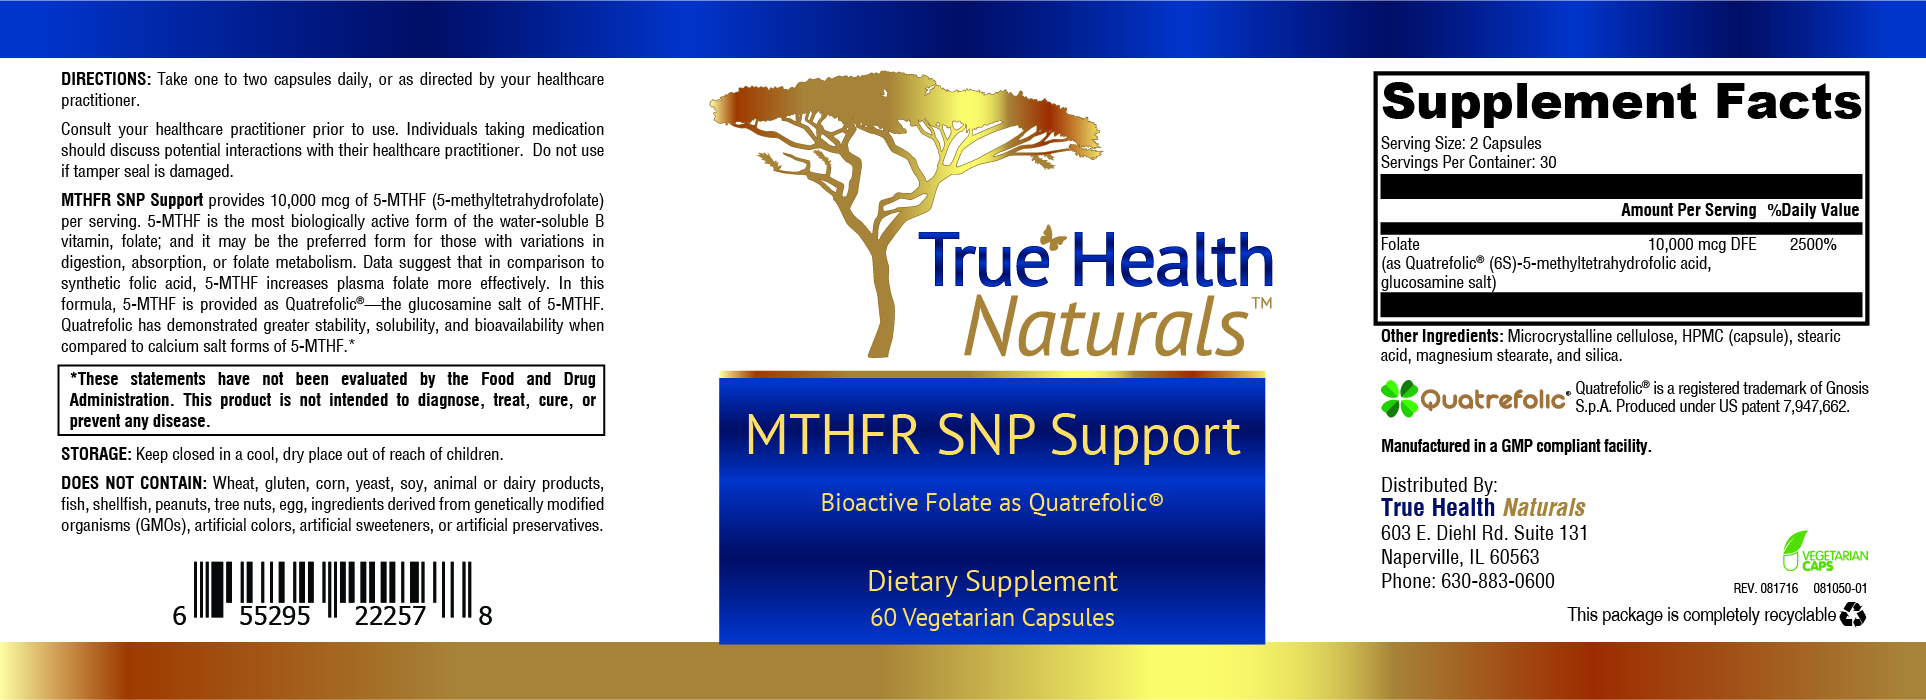 MTHFR SNP Support label